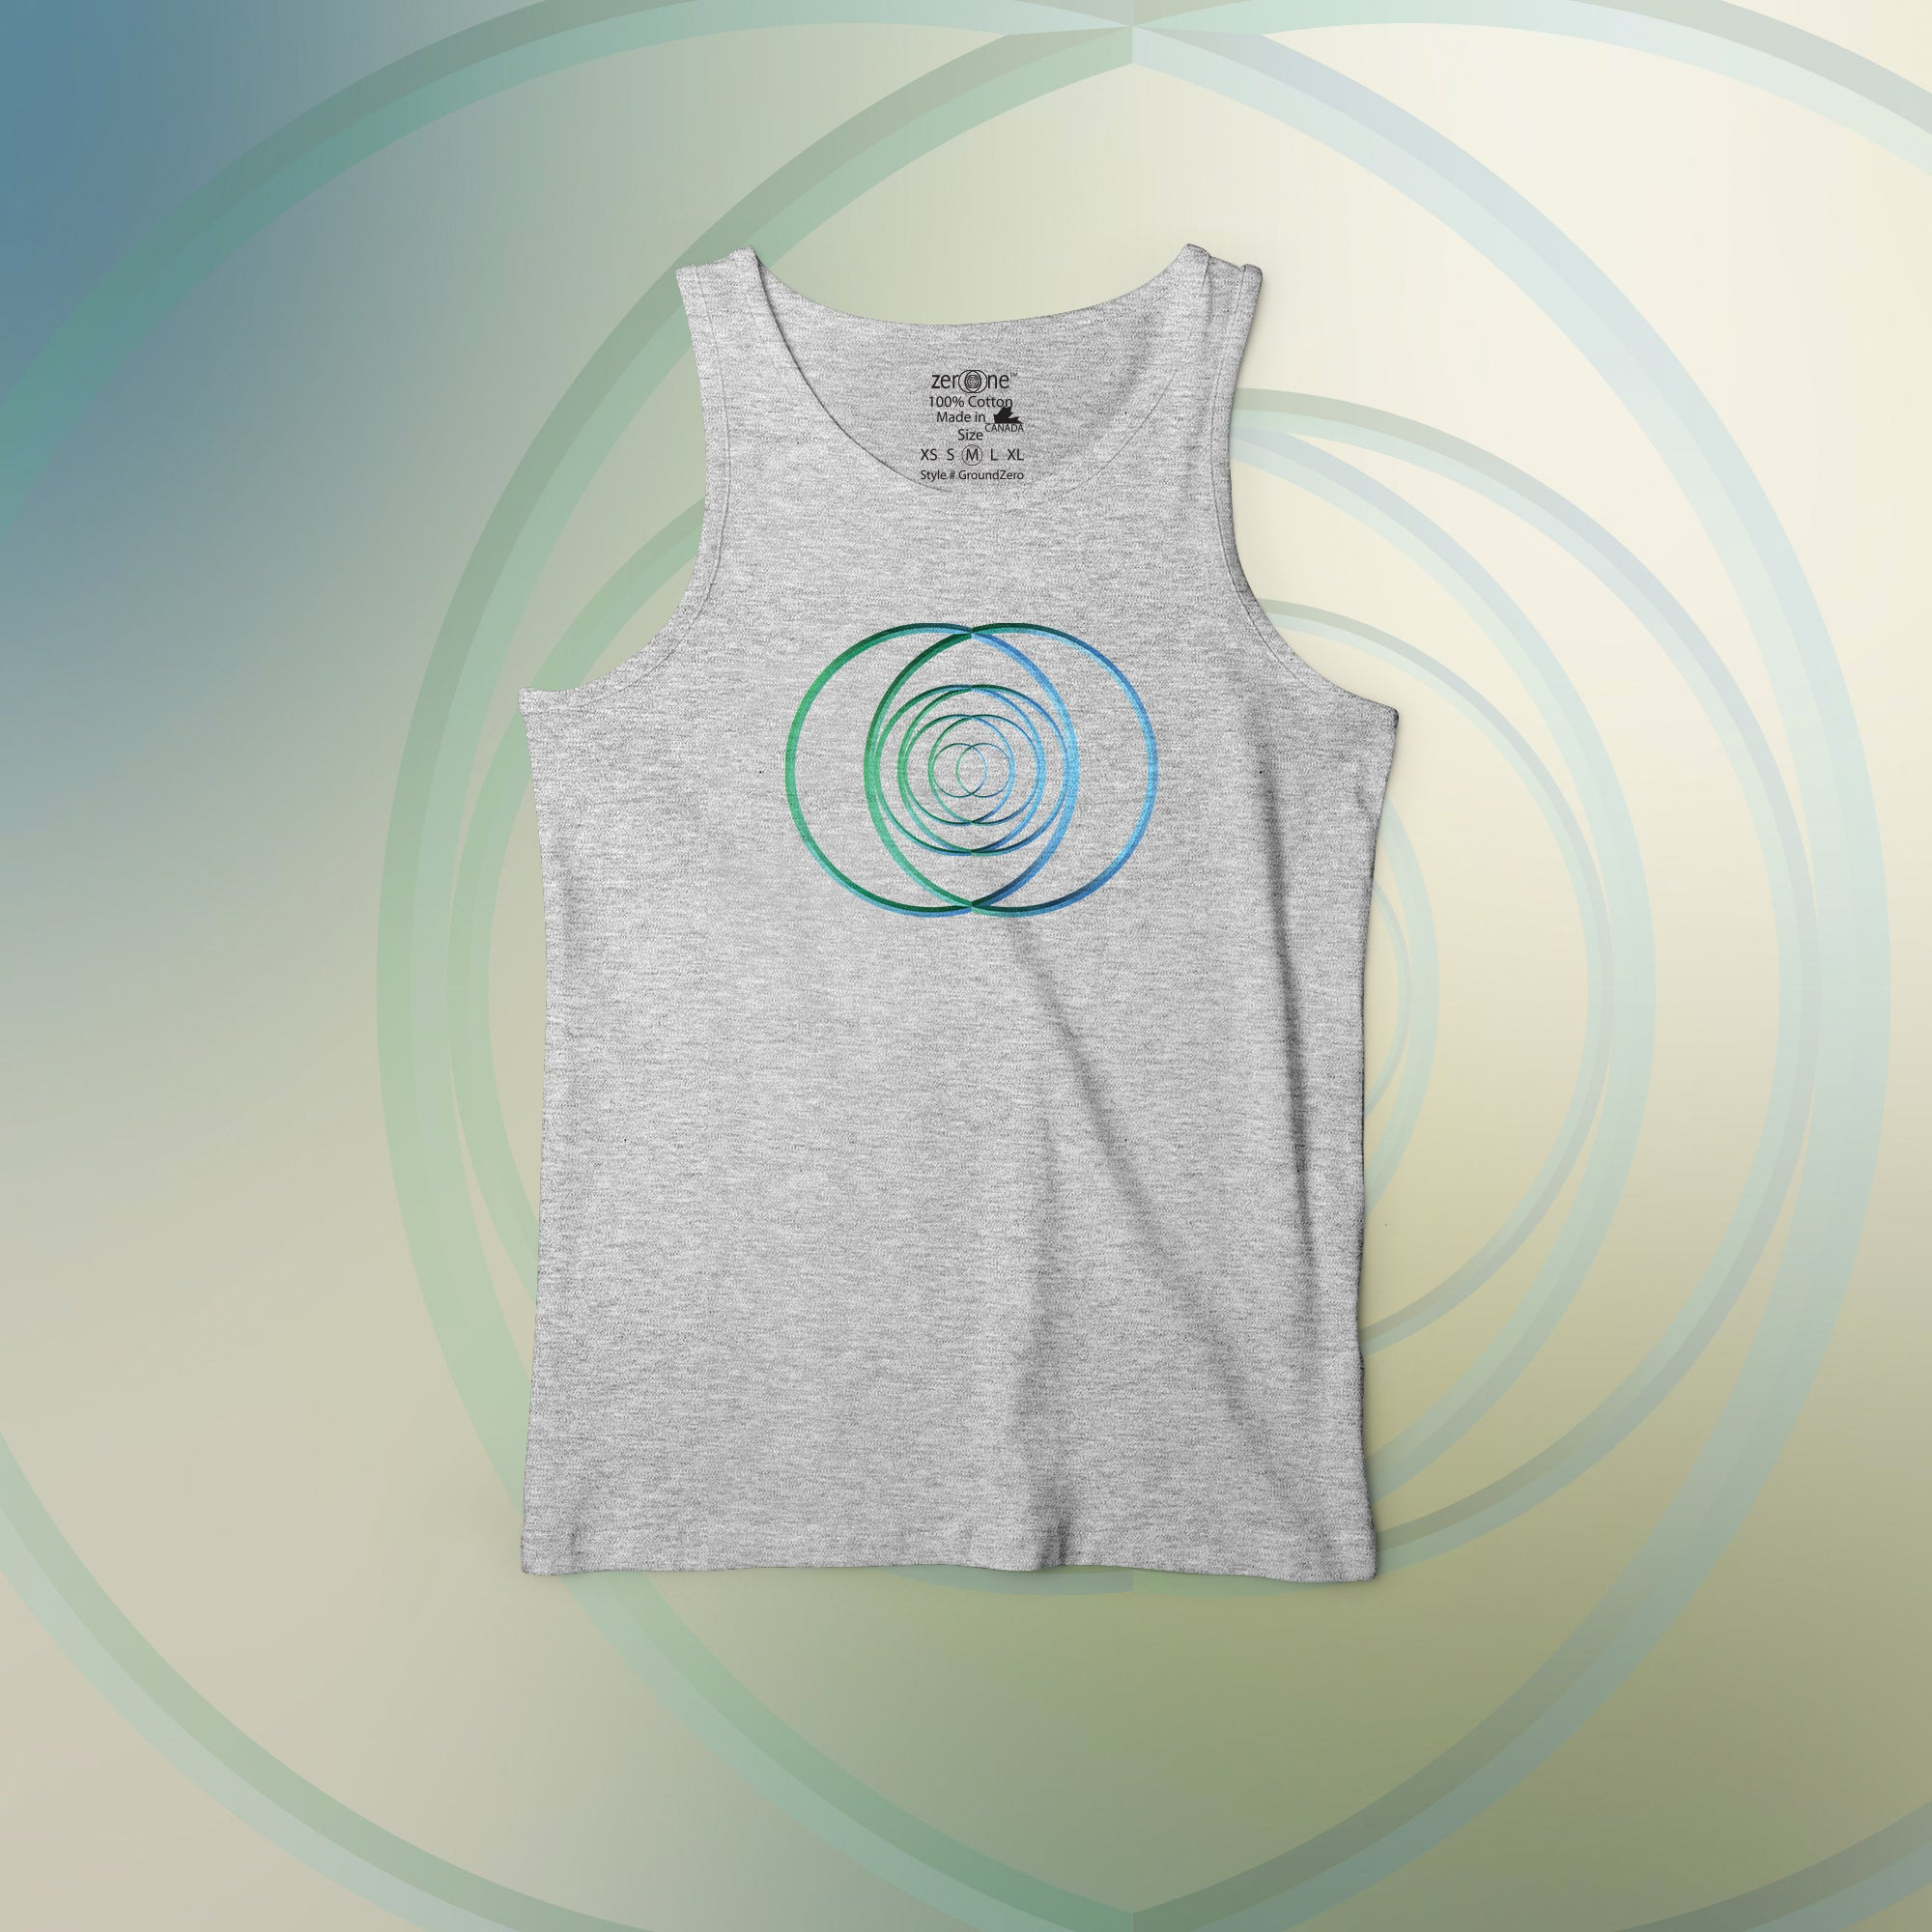 zeroone™ Groundzero Men's Tank Top